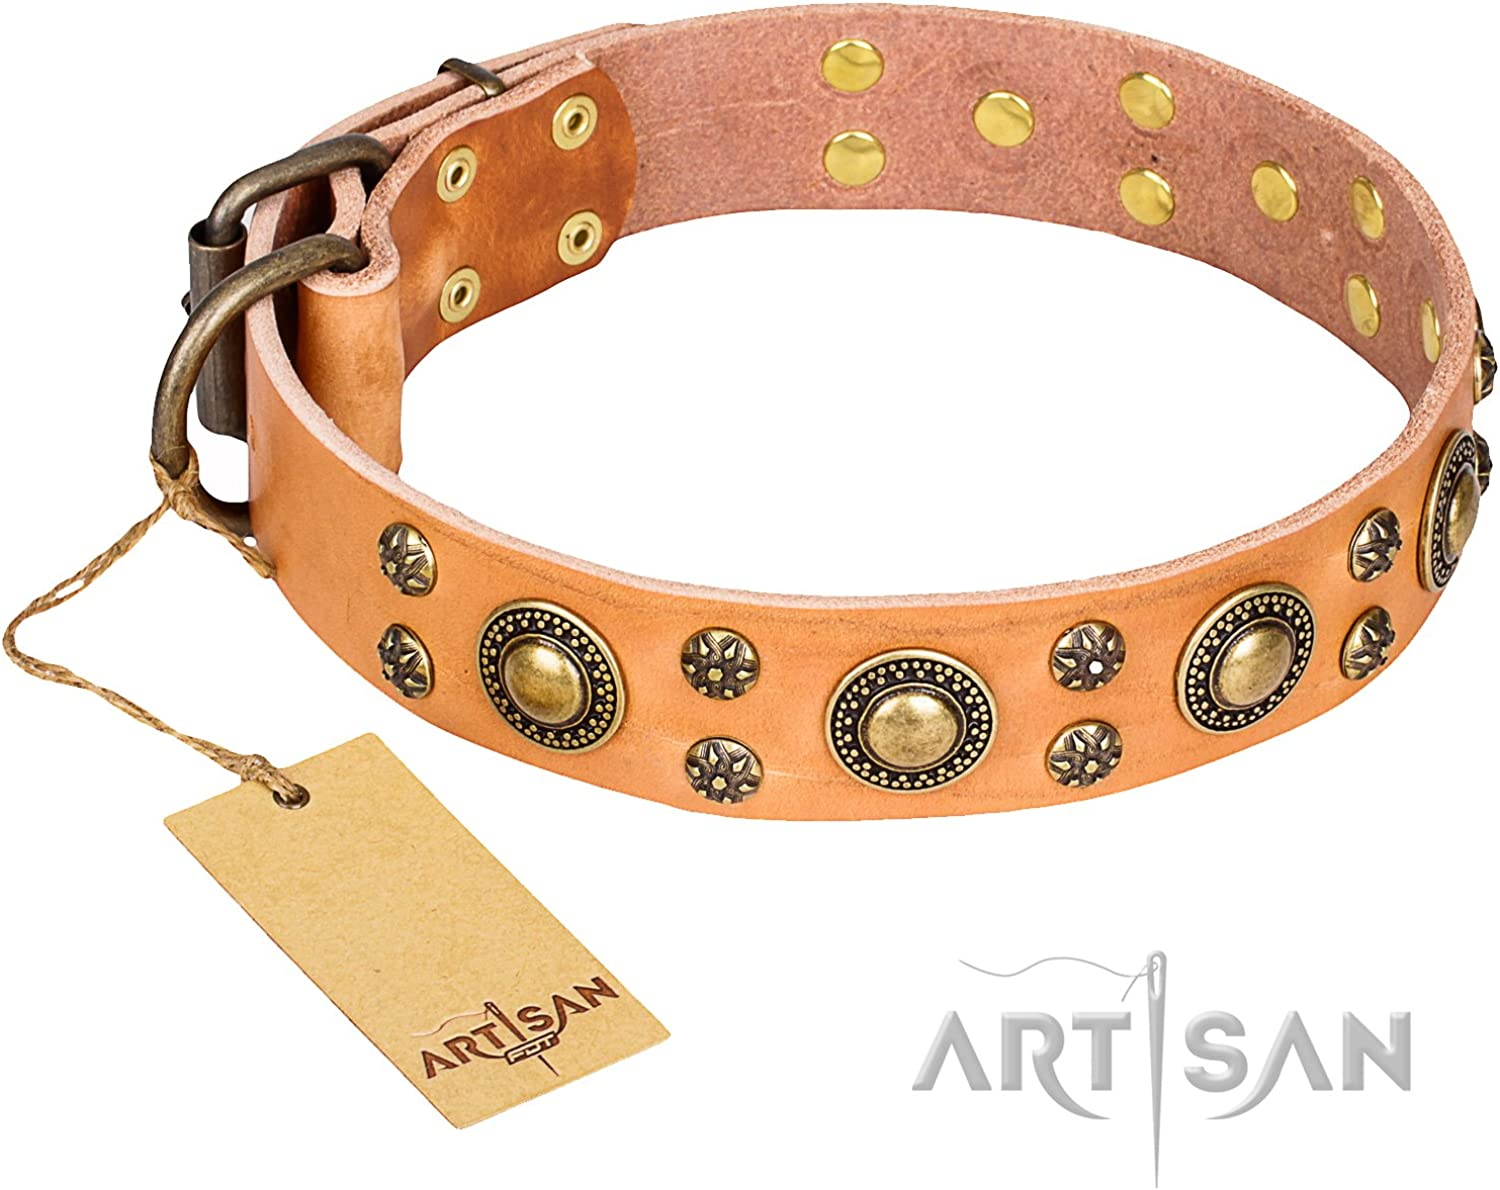 FDT Artisan 16 inch Tan Leather Dog Collar with Brass Plated Decorations Sophisticated Glamor  1 1 2 inch (40 mm) Wide